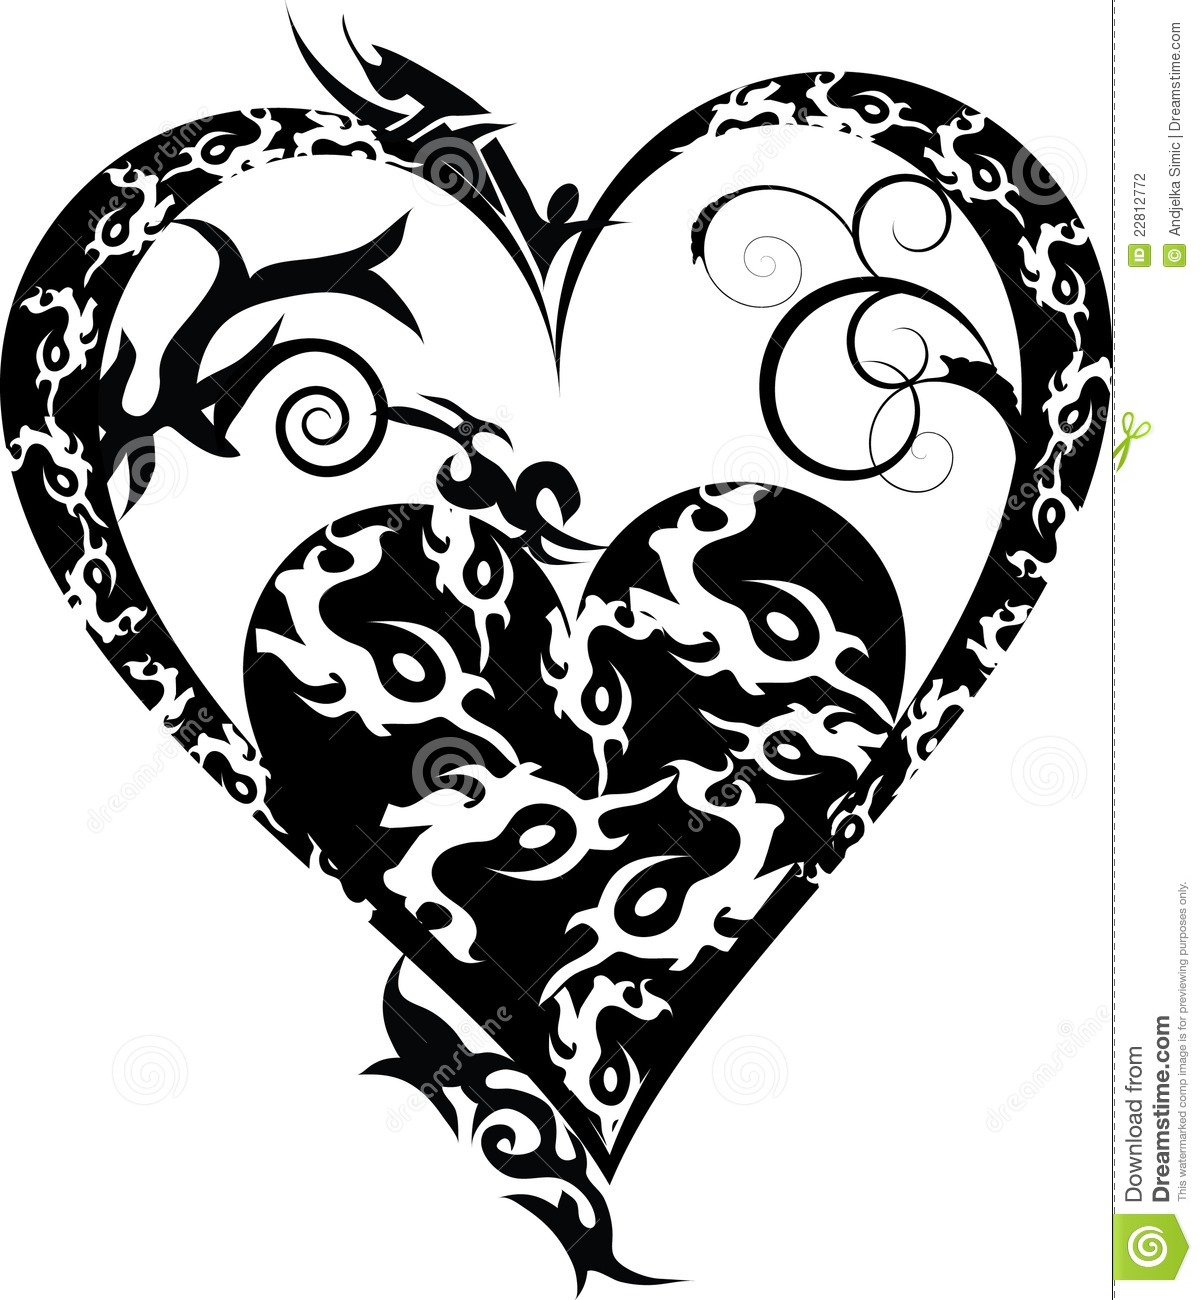 Tribal tattoo heart black isolated on white